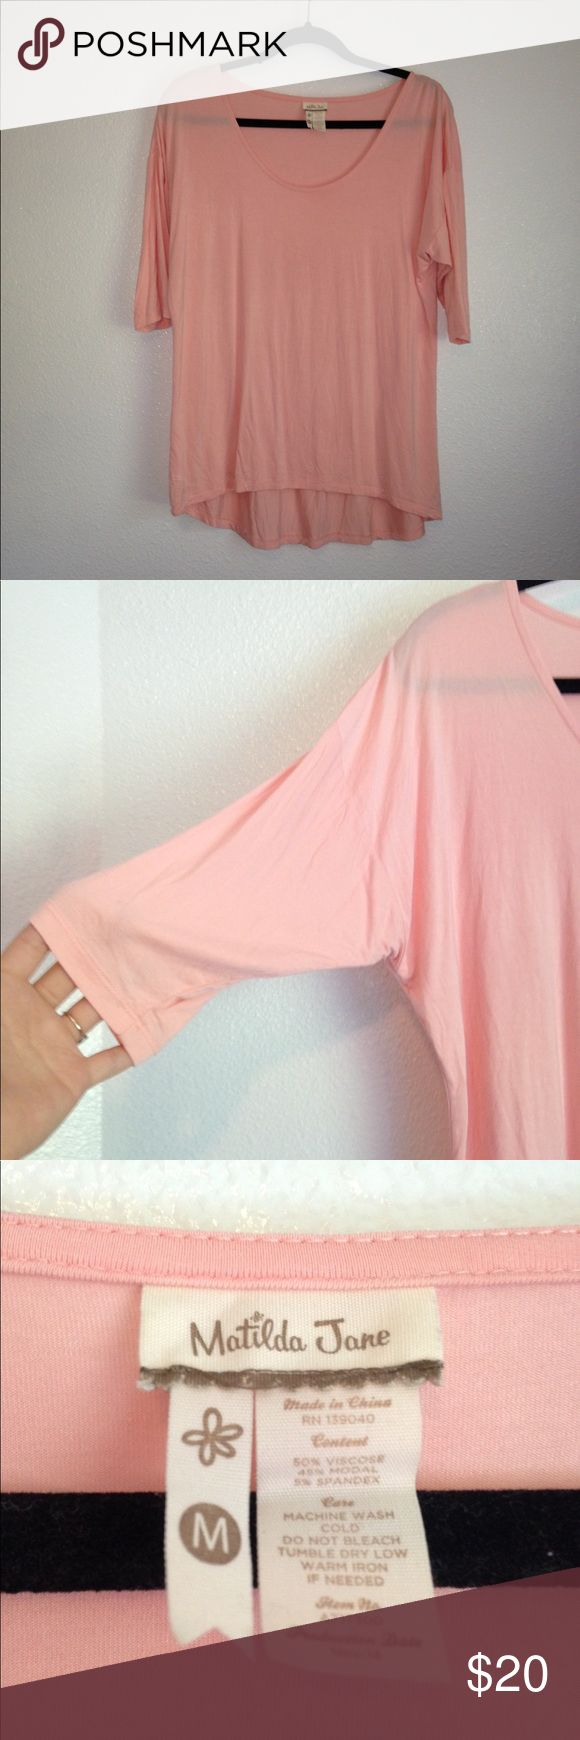 Matilda Jane Top Matilda Jane pale pink batwing top. Super soft and lightweight. Matilda Jane Tops